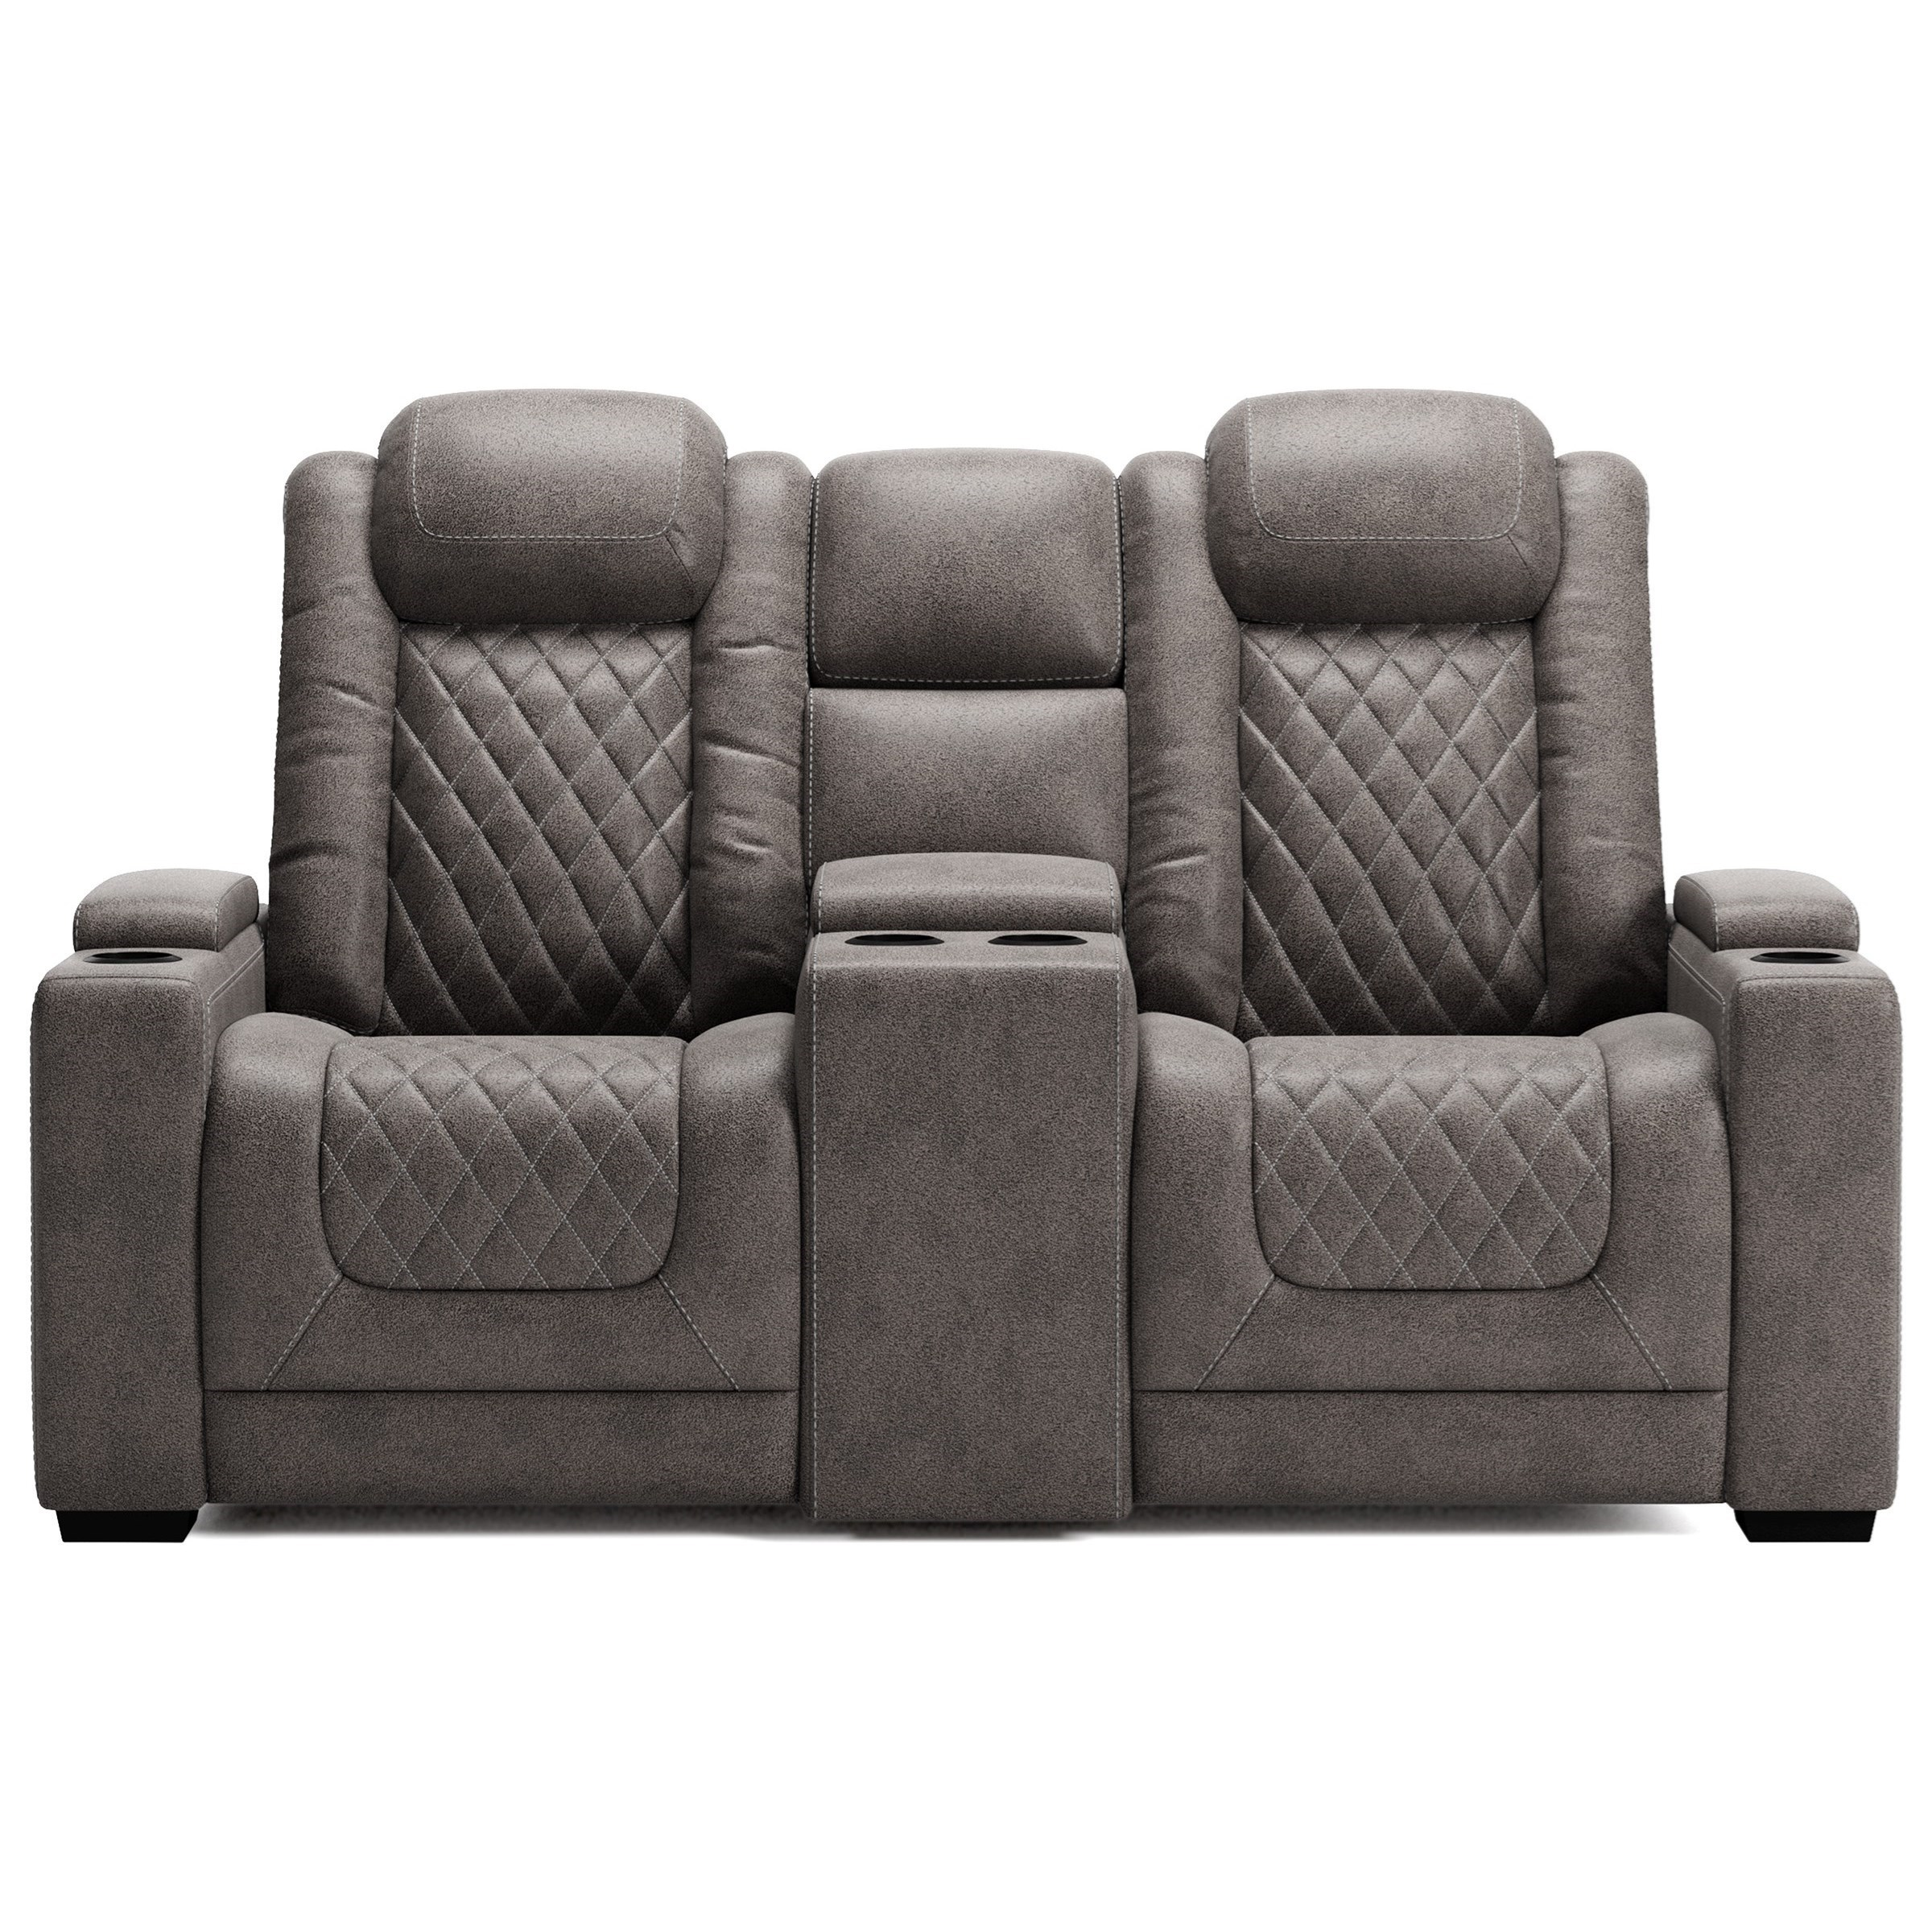 Pwr Rec Loveseat with Console and Adj Hdrsts